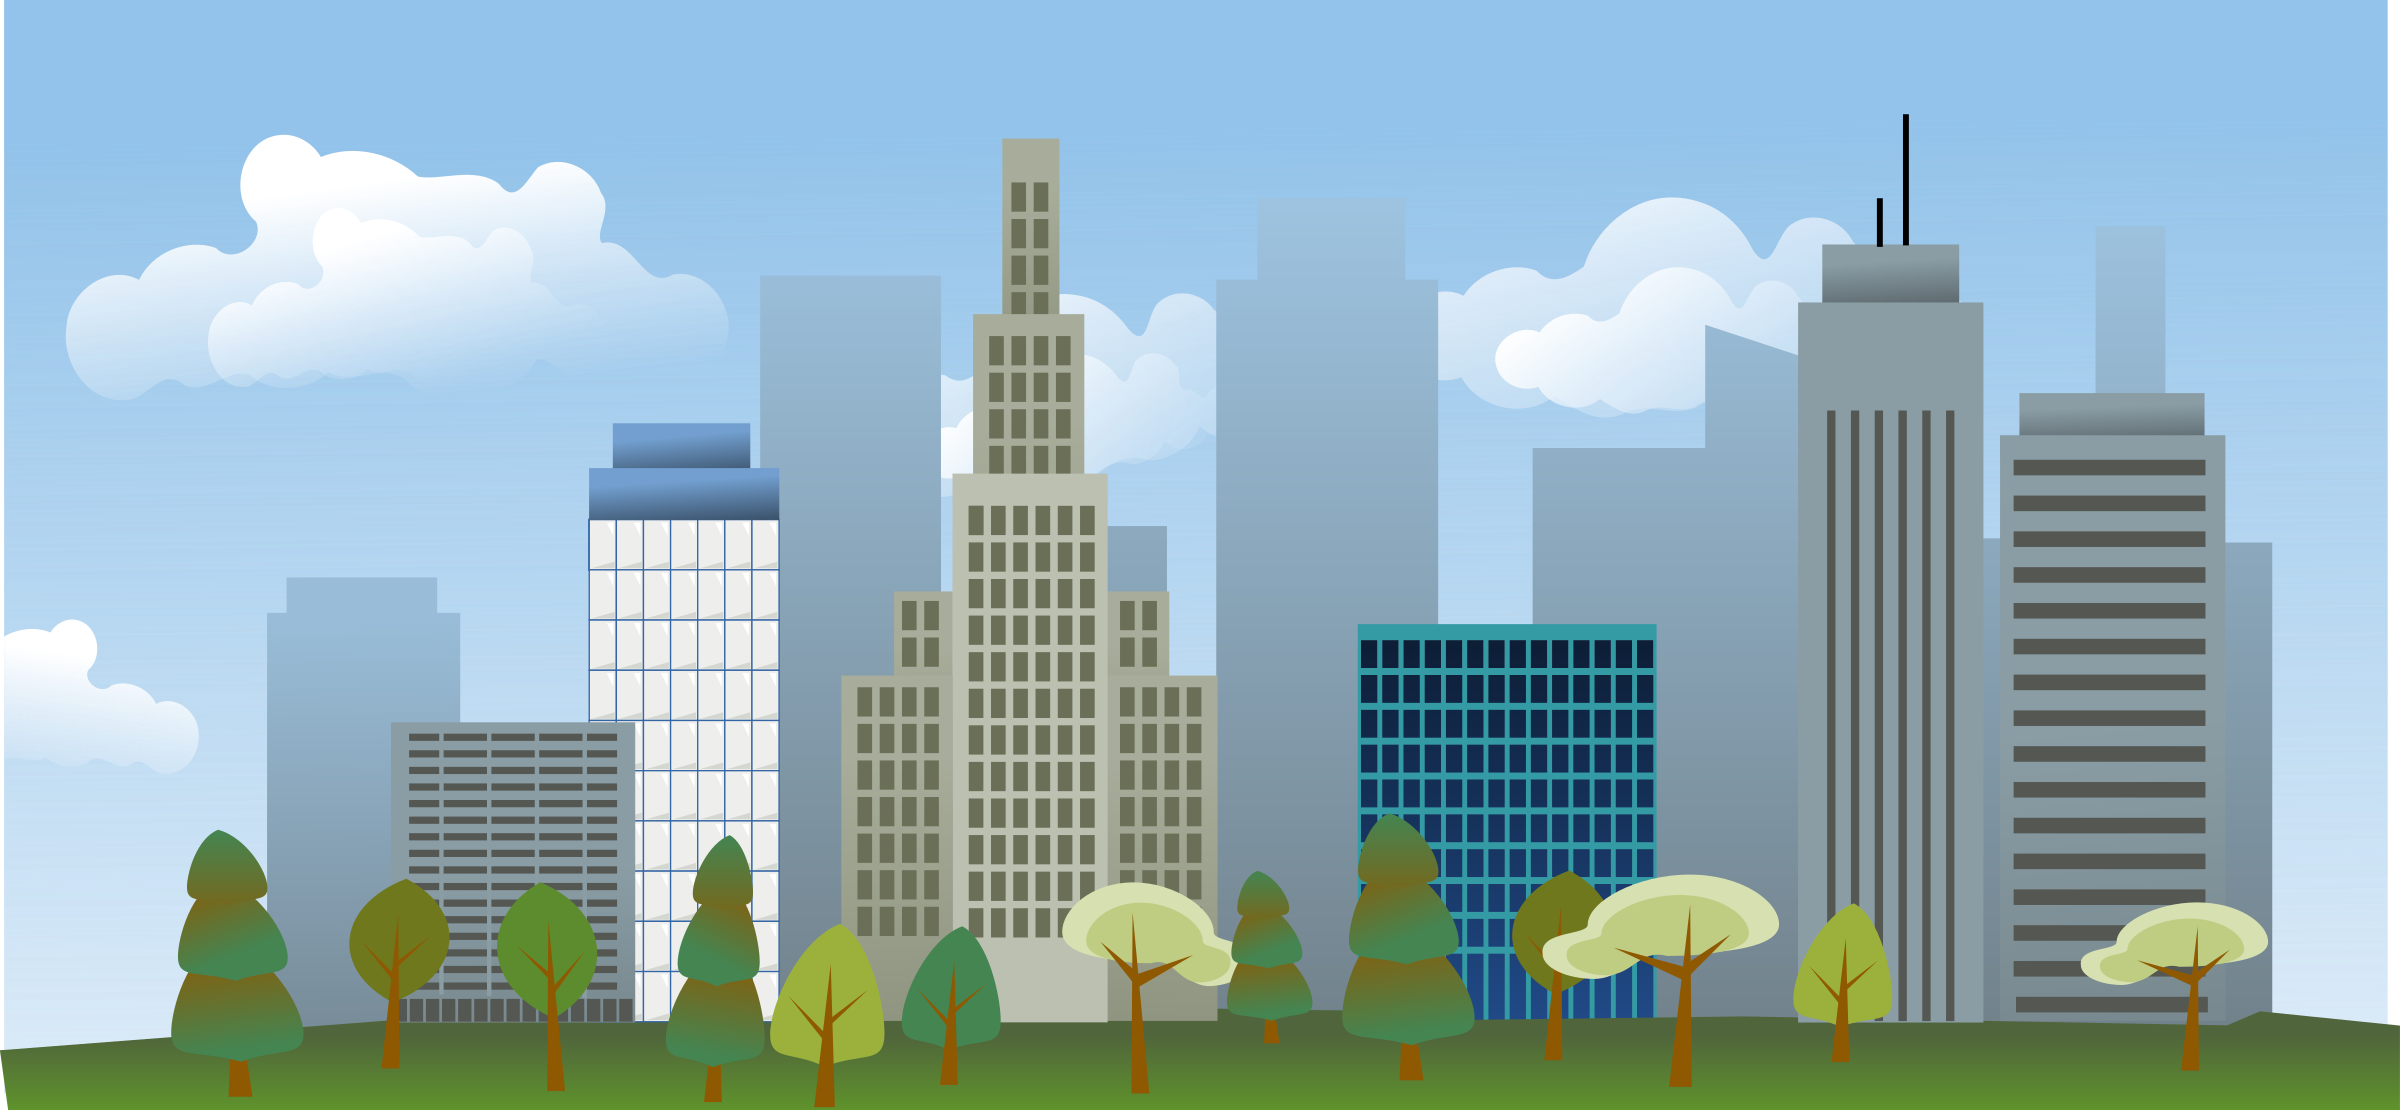 City clipart #9, Download drawings